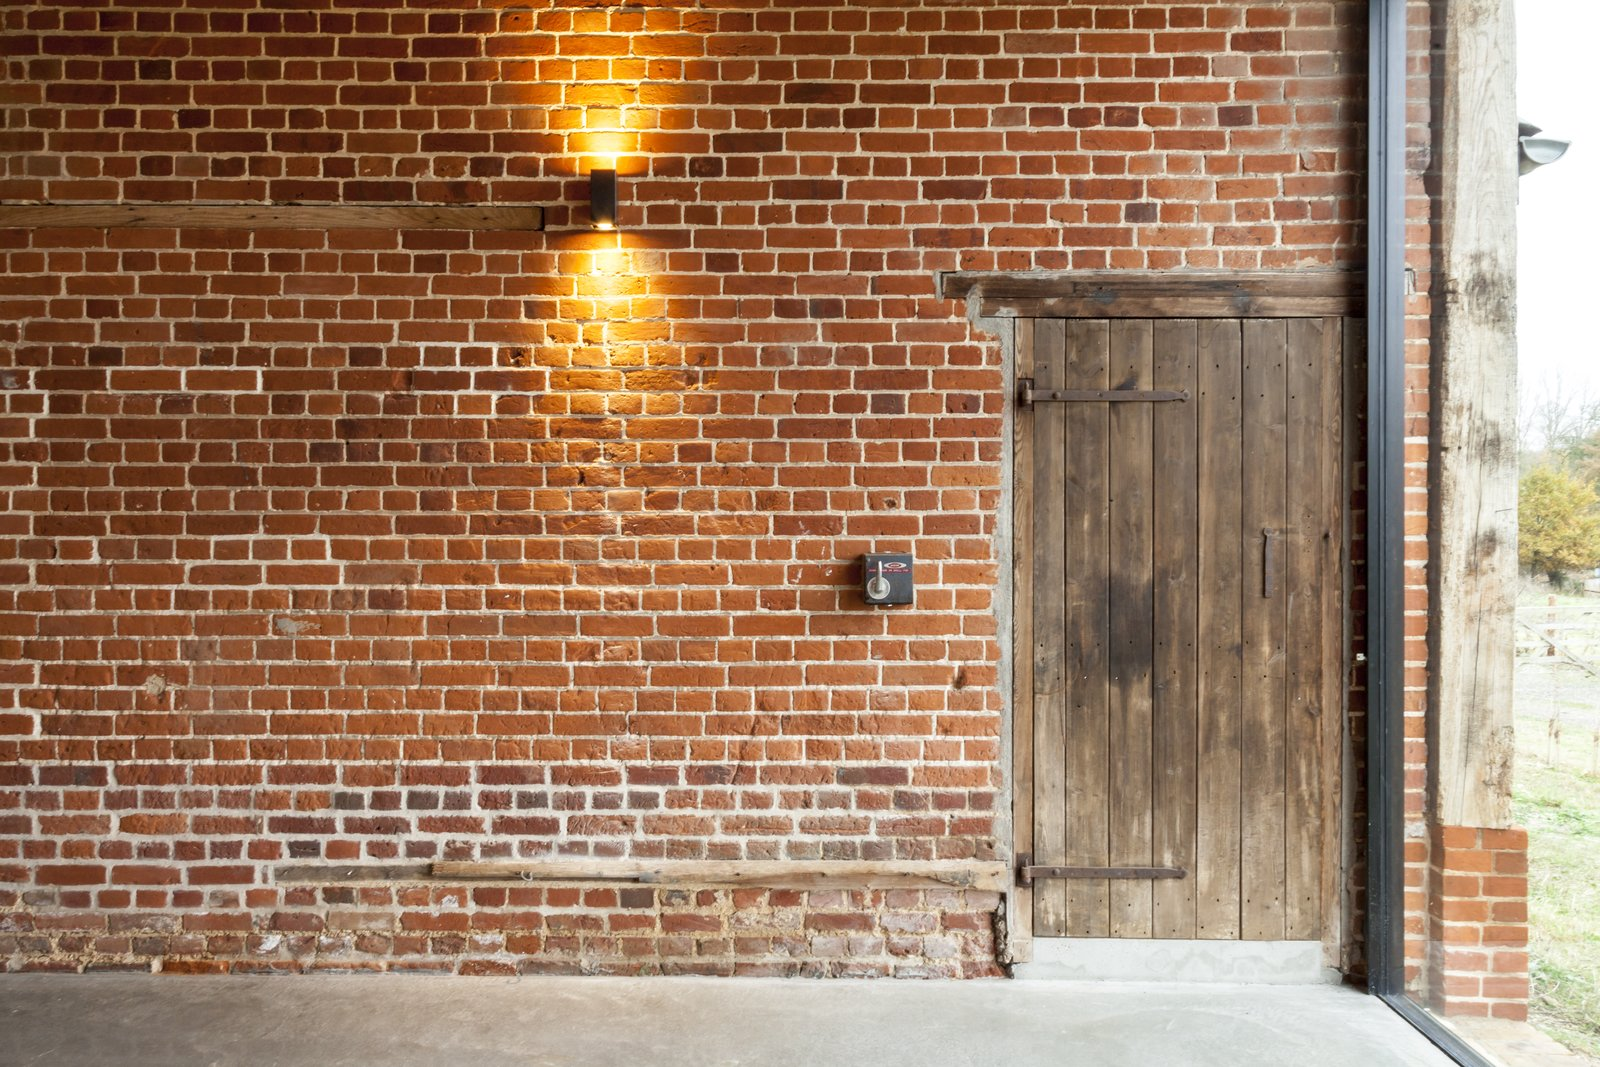 The lights are operated by original switch boxes. Beside it, a barn door leads to the three bedrooms. This Converted Barn in the English Countryside Stays True to its Historic Roots - Photo 8 of 10